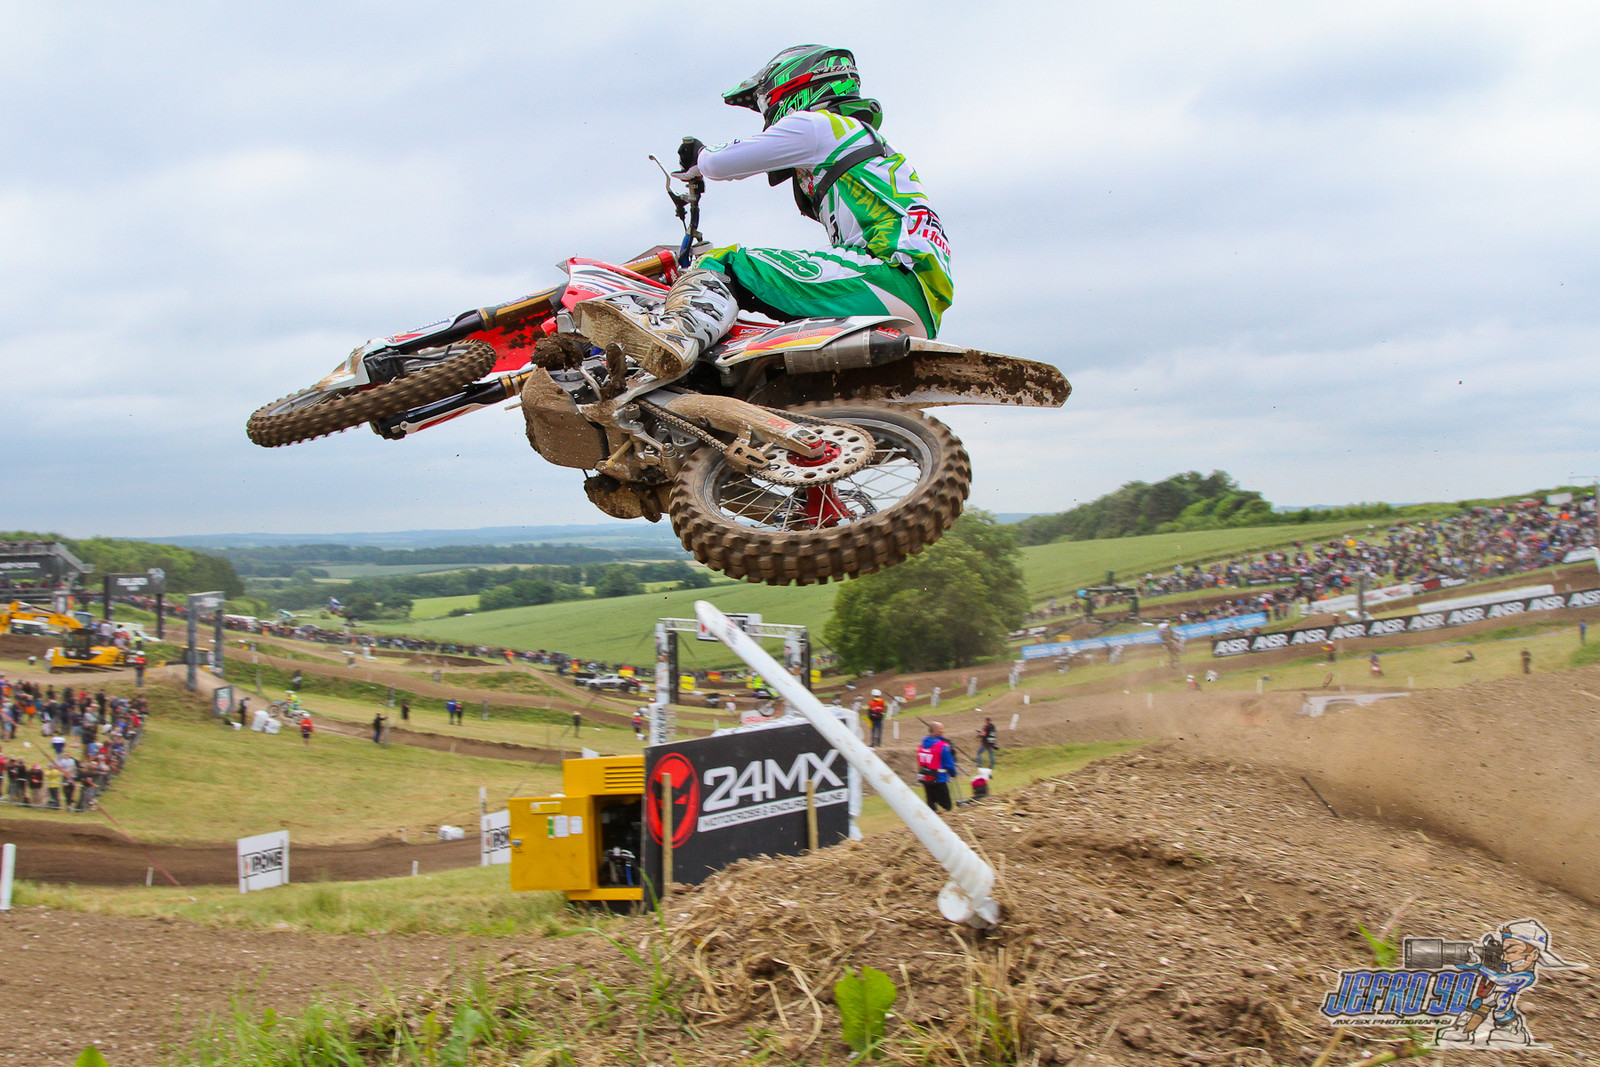 Henry Jacobi - Photo Gallery: MXGP of Great Britain - Motocross Pictures - Vital MX